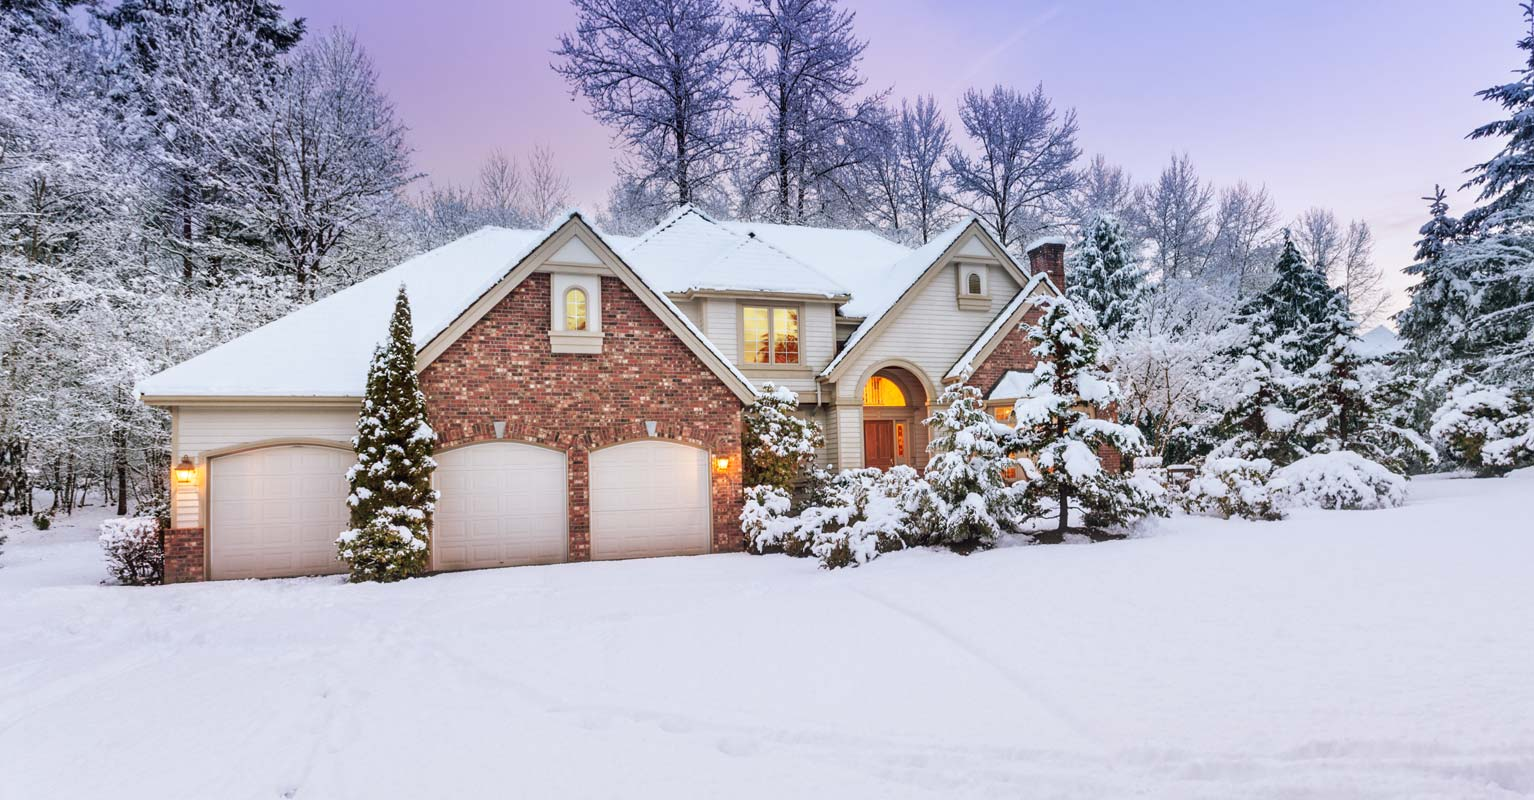 preparing your home for winter | american family insurance